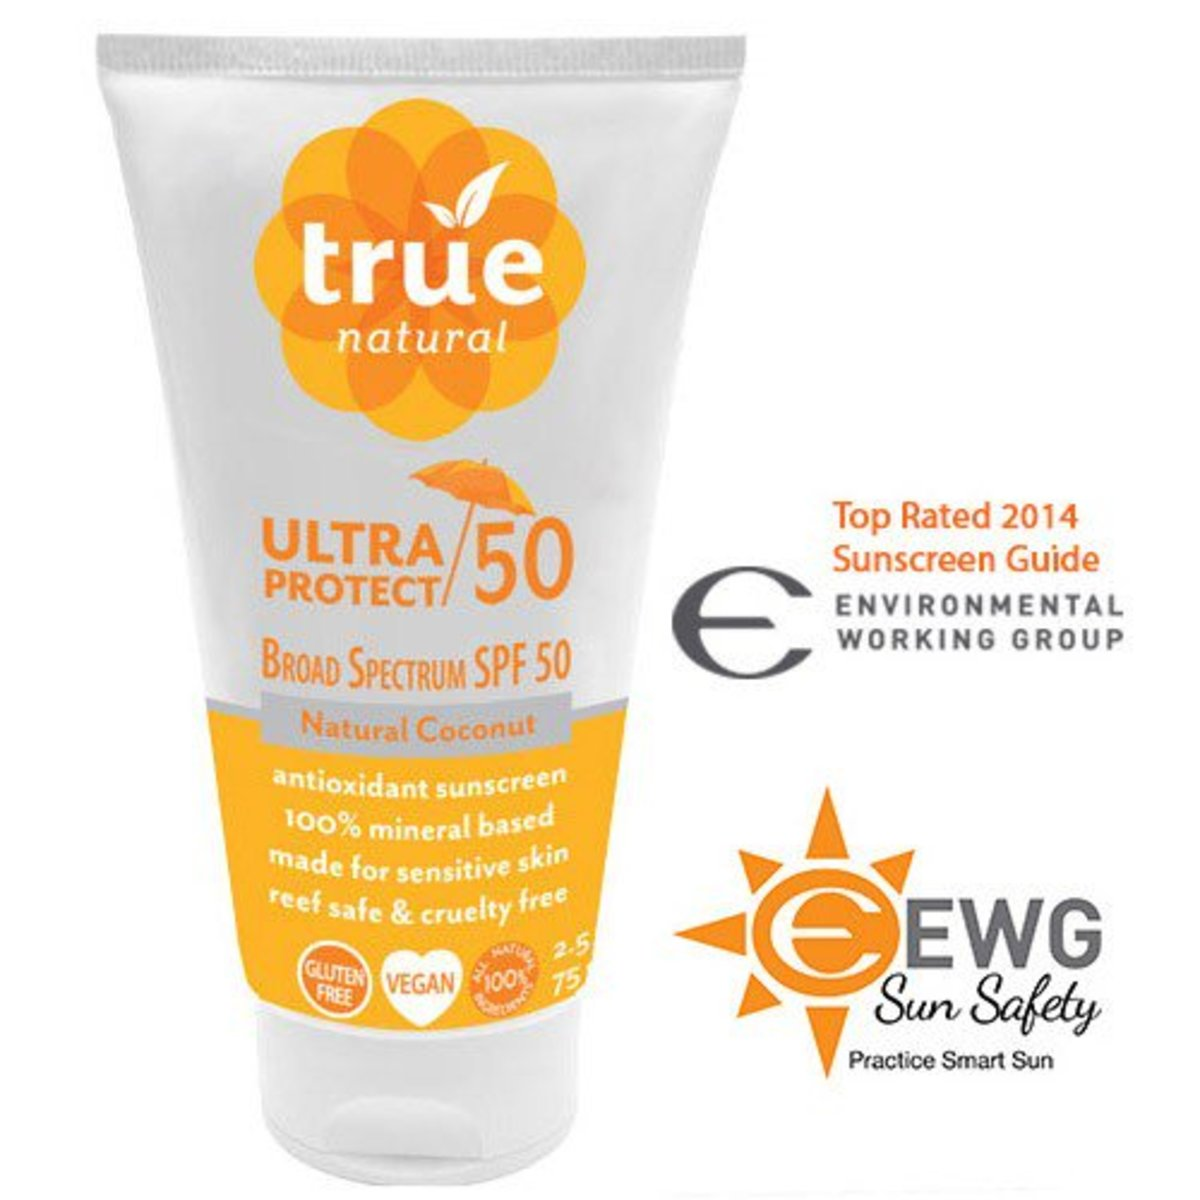 True Natural Ultra Protect 50 Antioxidant Sunscreen